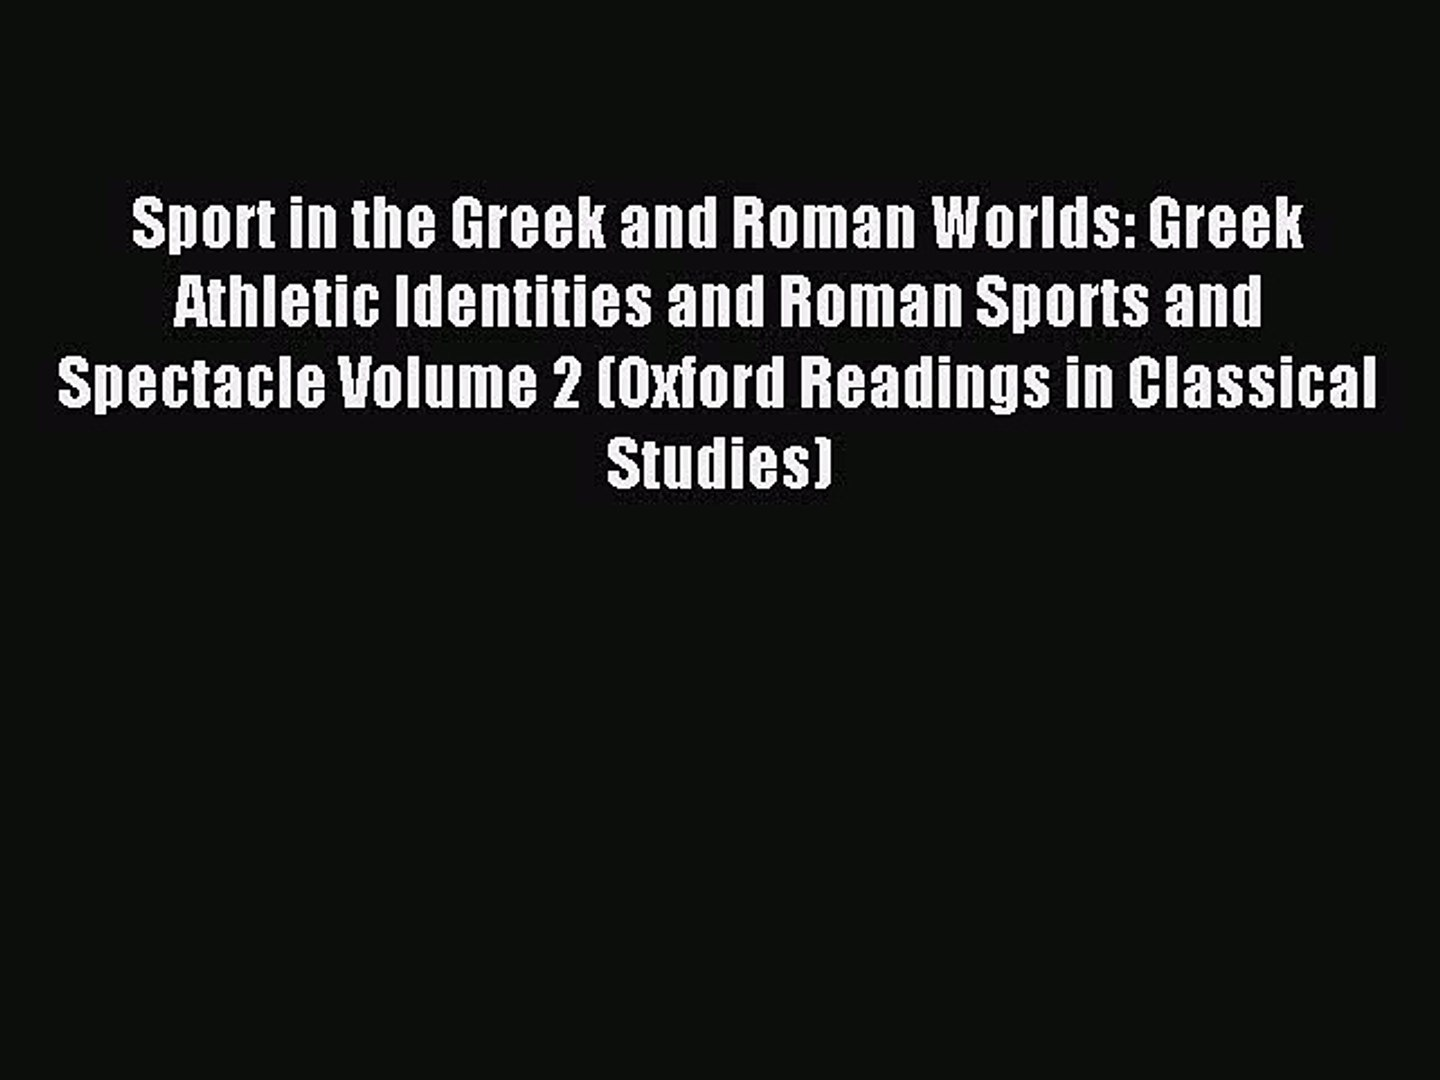 Read Sport in the Greek and Roman Worlds: Greek Athletic Identities and Roman Sports and Spectacle